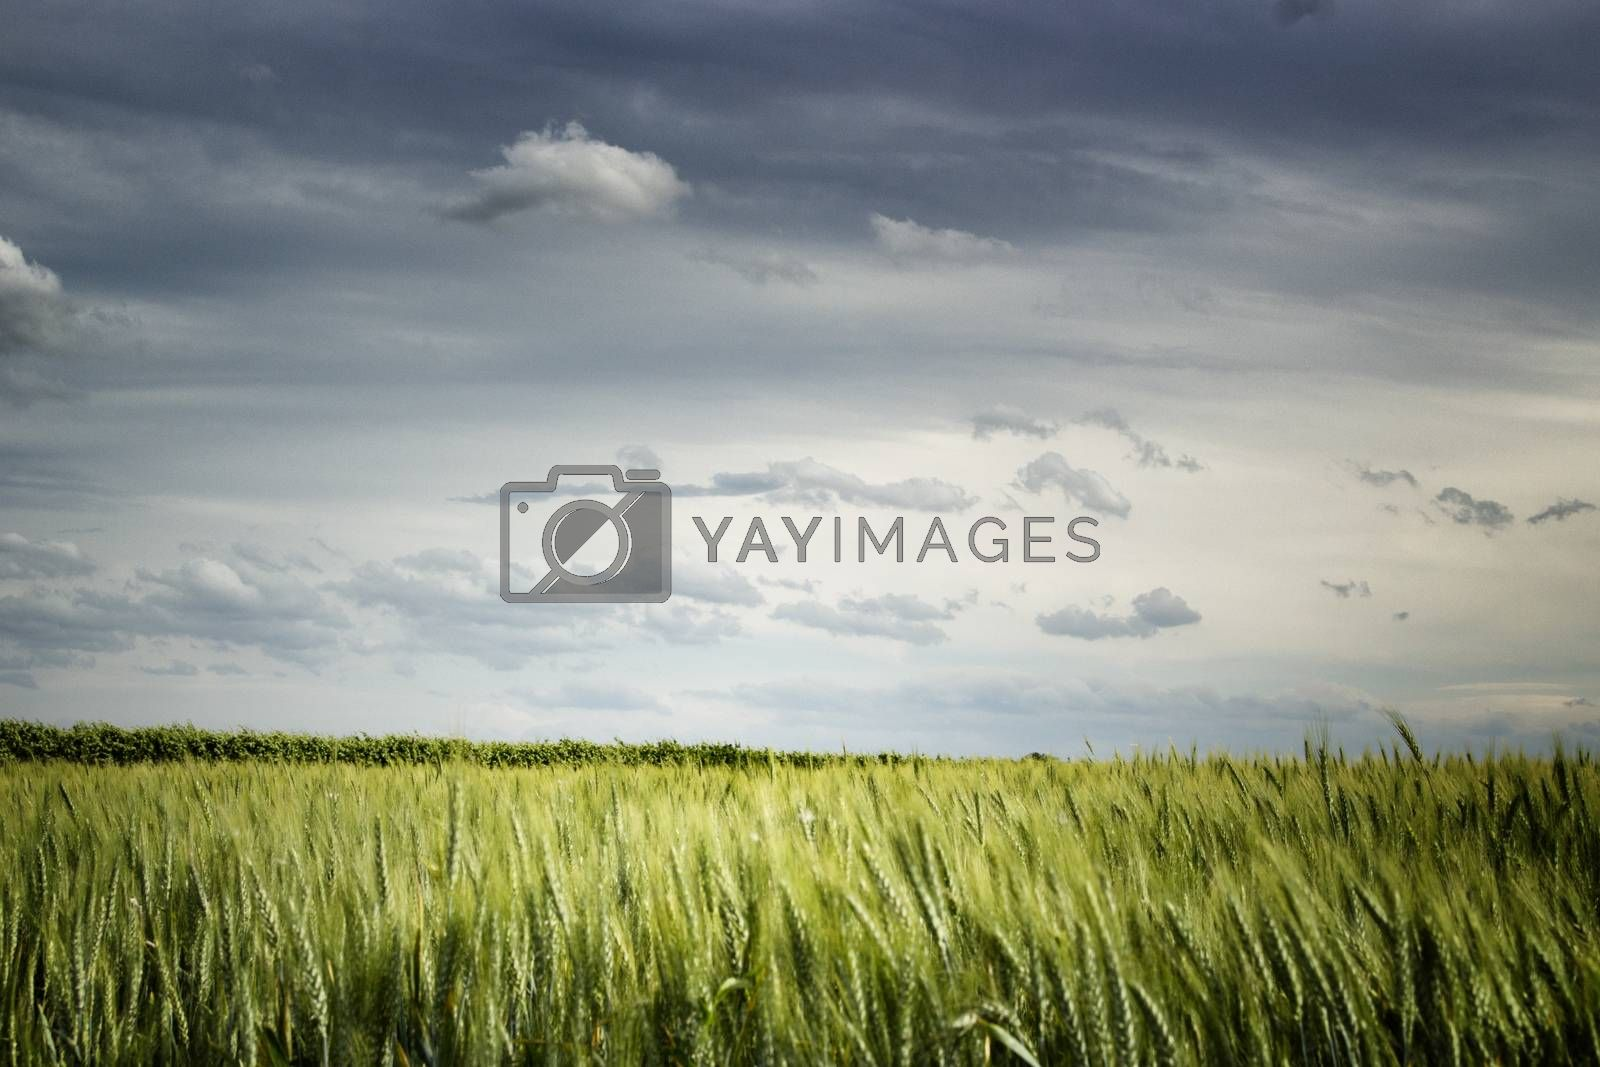 Wheat fields in Italian countryside by paocasa